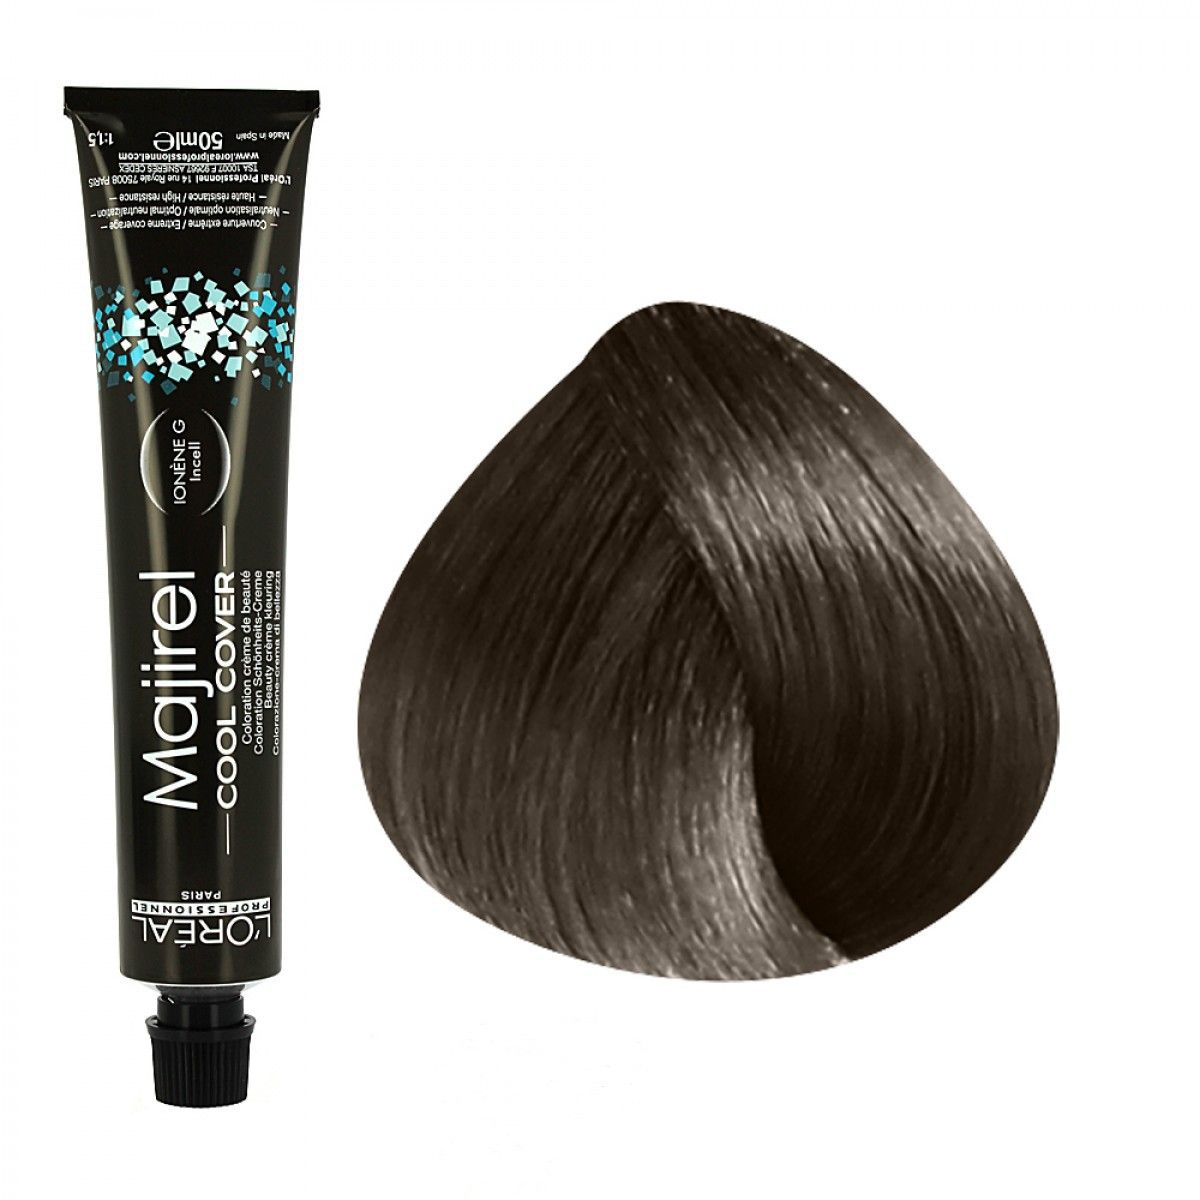 Image Result For Loreal Majirel Cool Cover 6 1